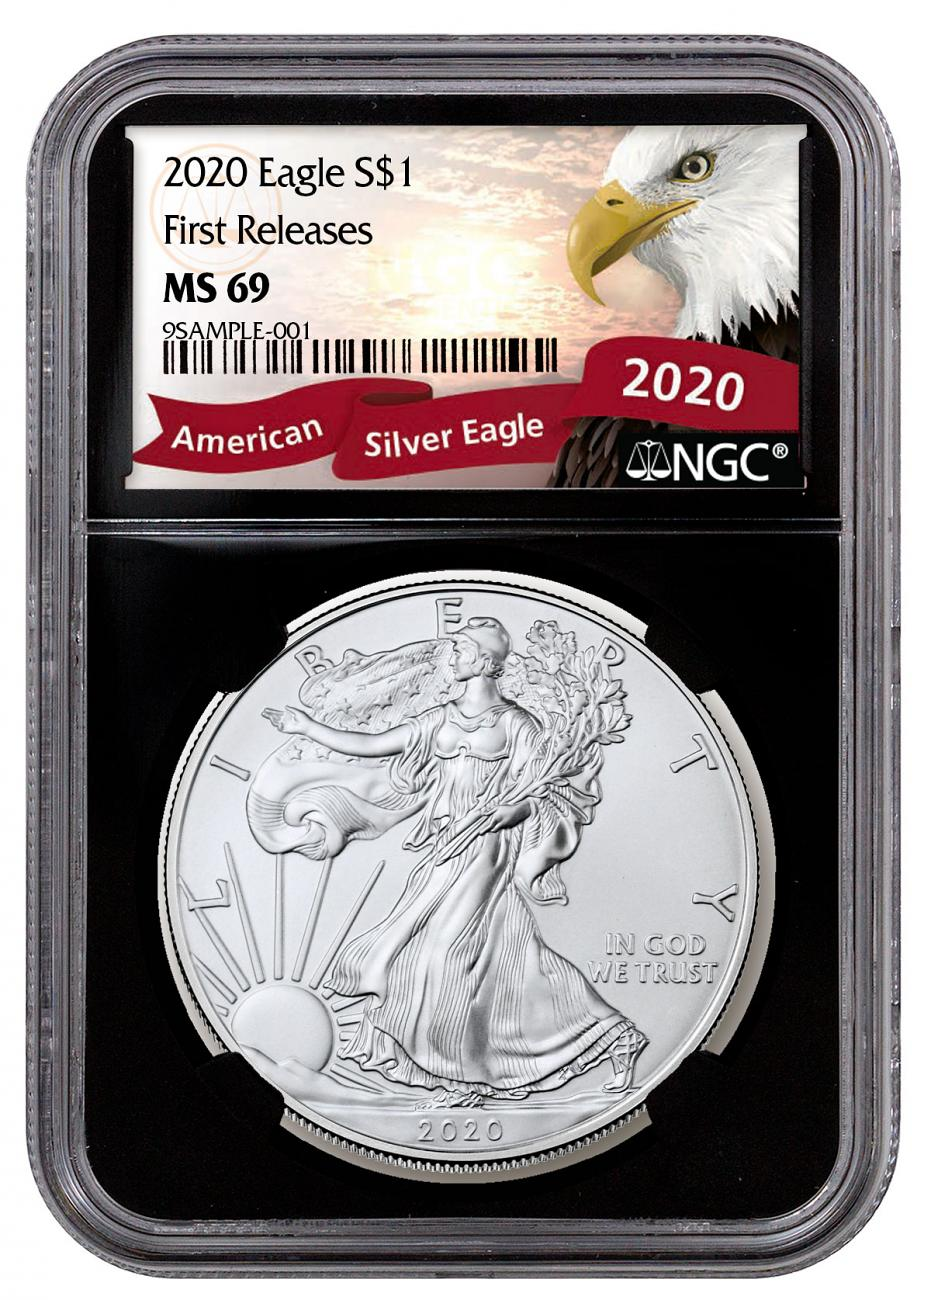 2020 1 oz American Silver Eagle $1 Coin NGC MS69 FR Black Core Holder Exclusive Eagle Label